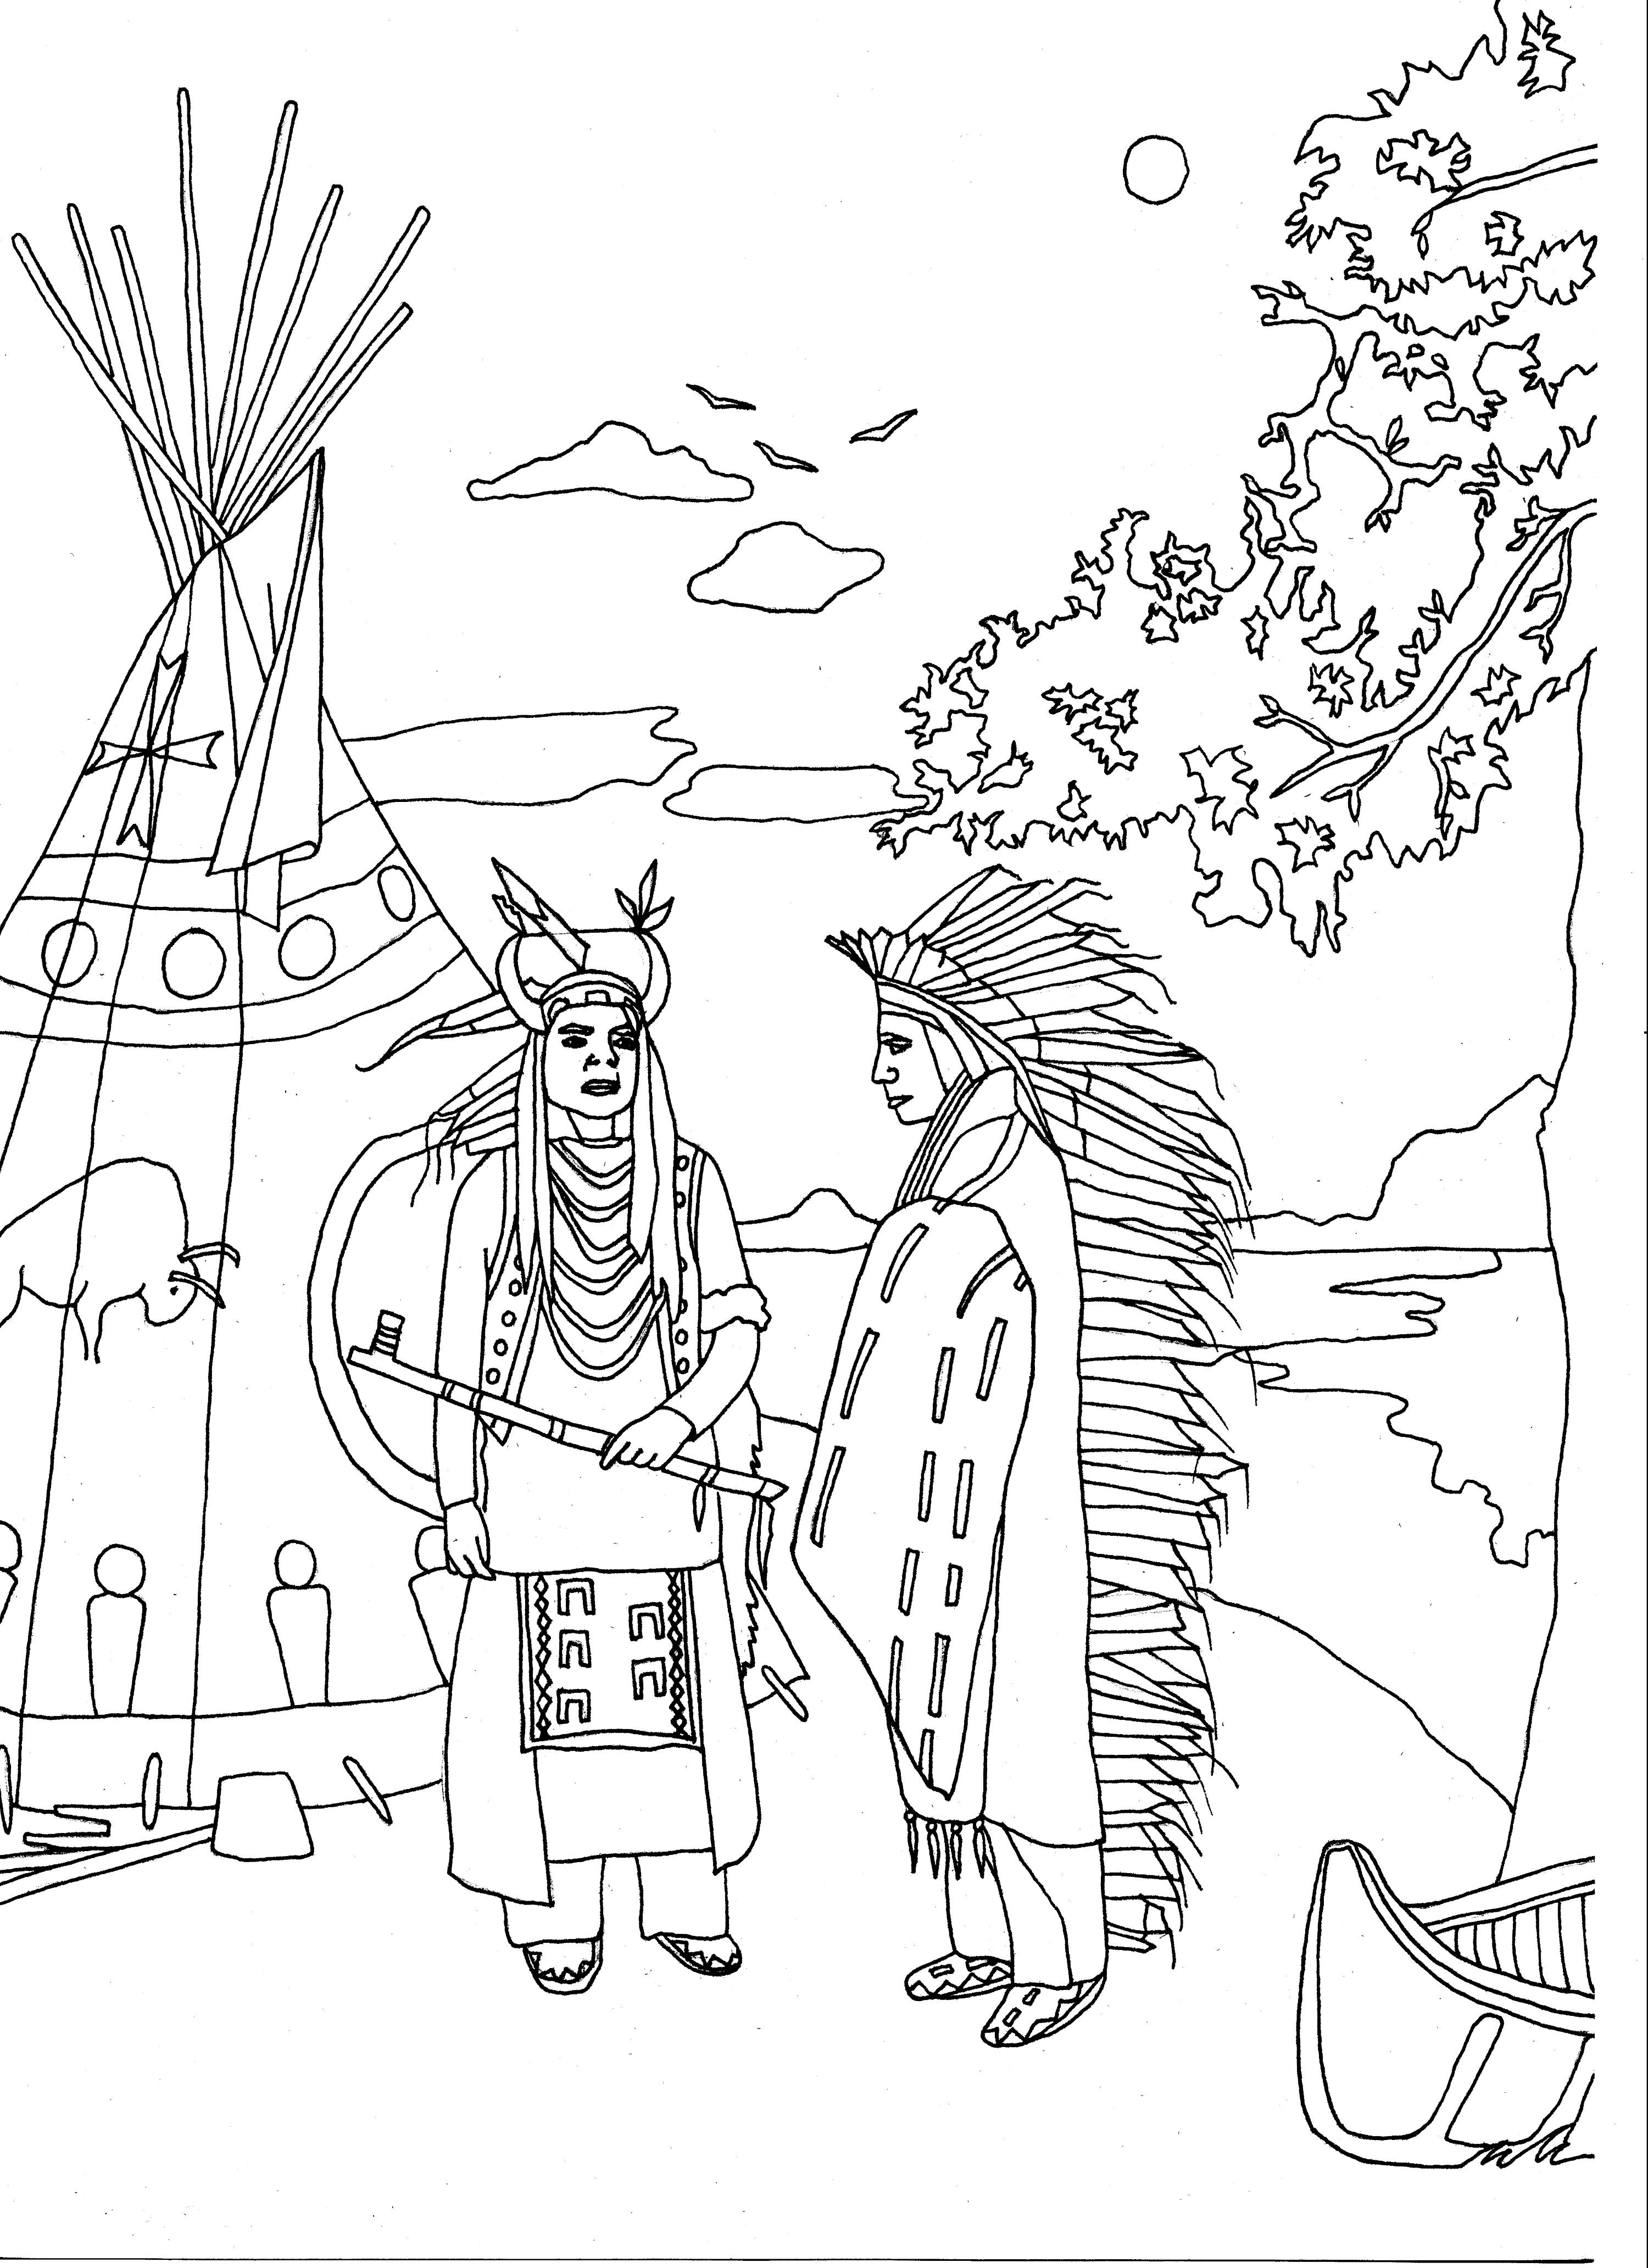 adult coloring pages native american - photo#18